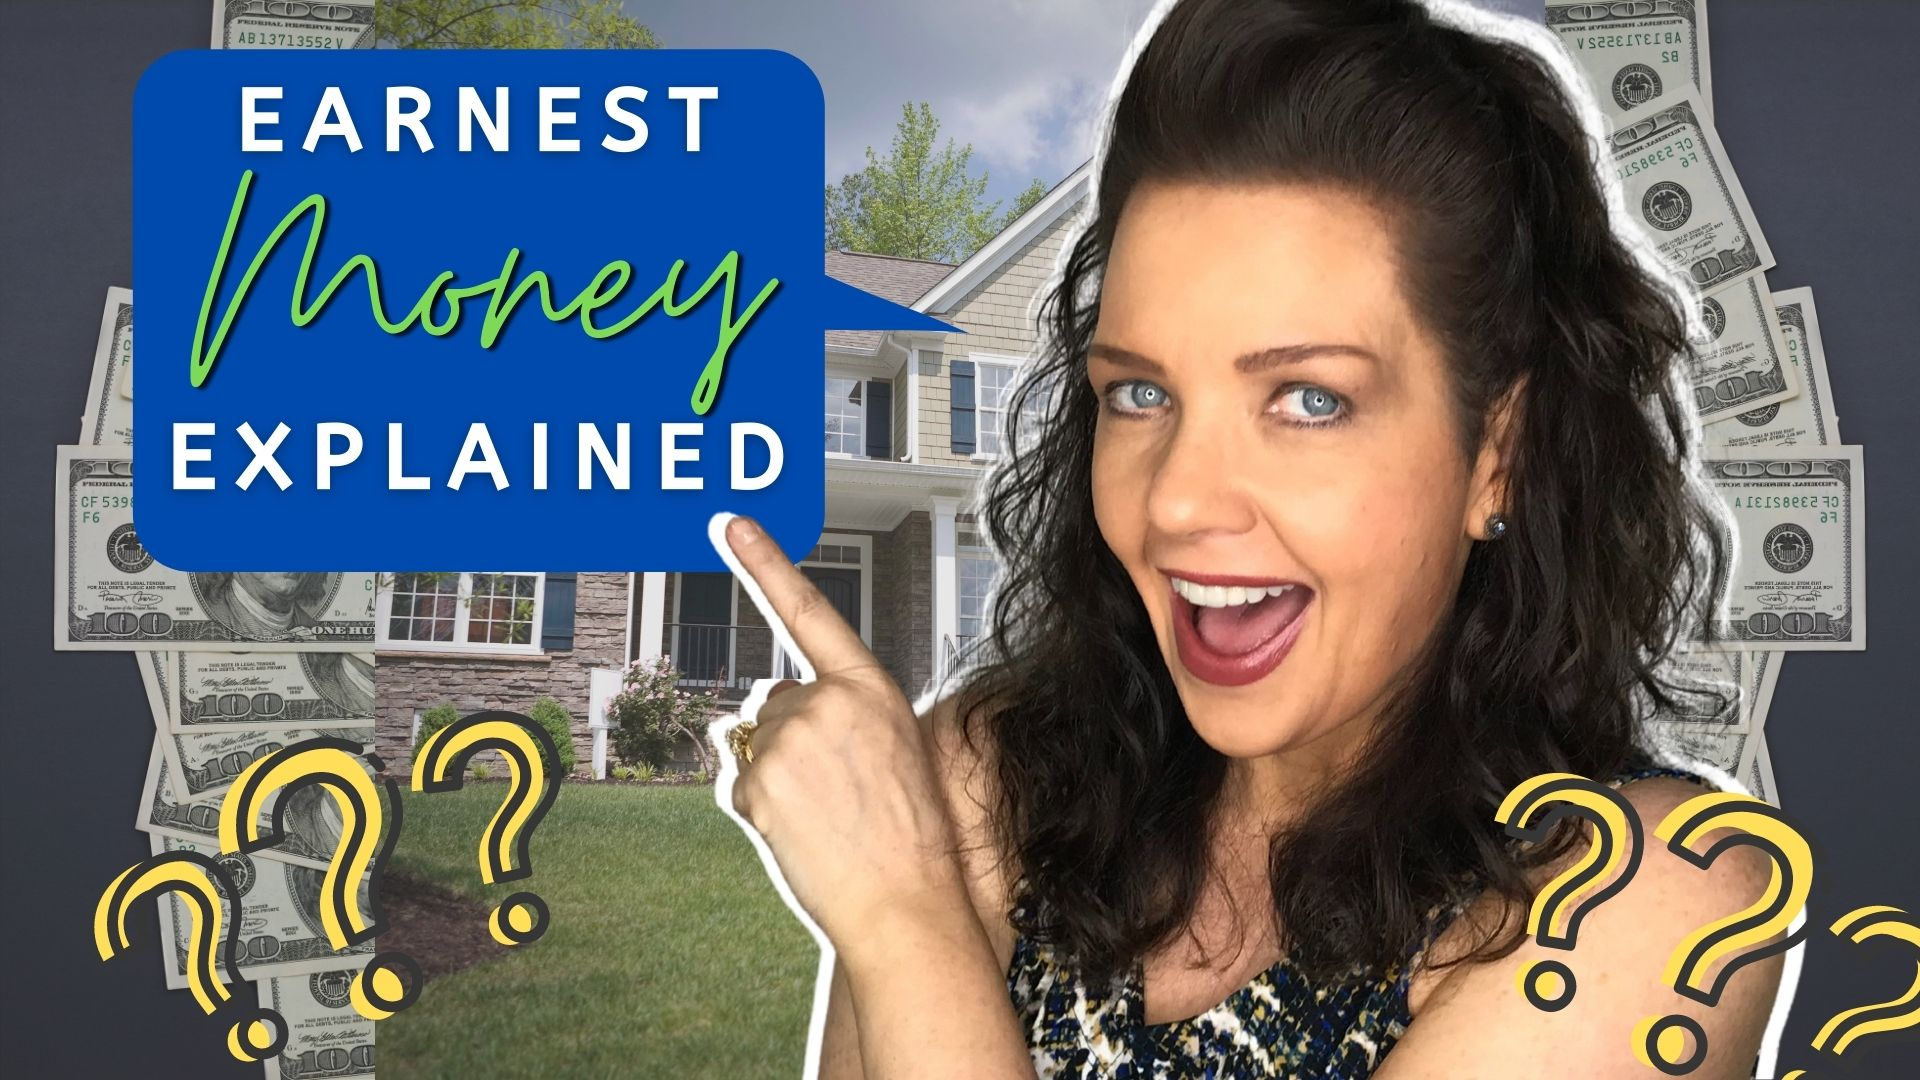 What is Earnest Money When Buying a Home?